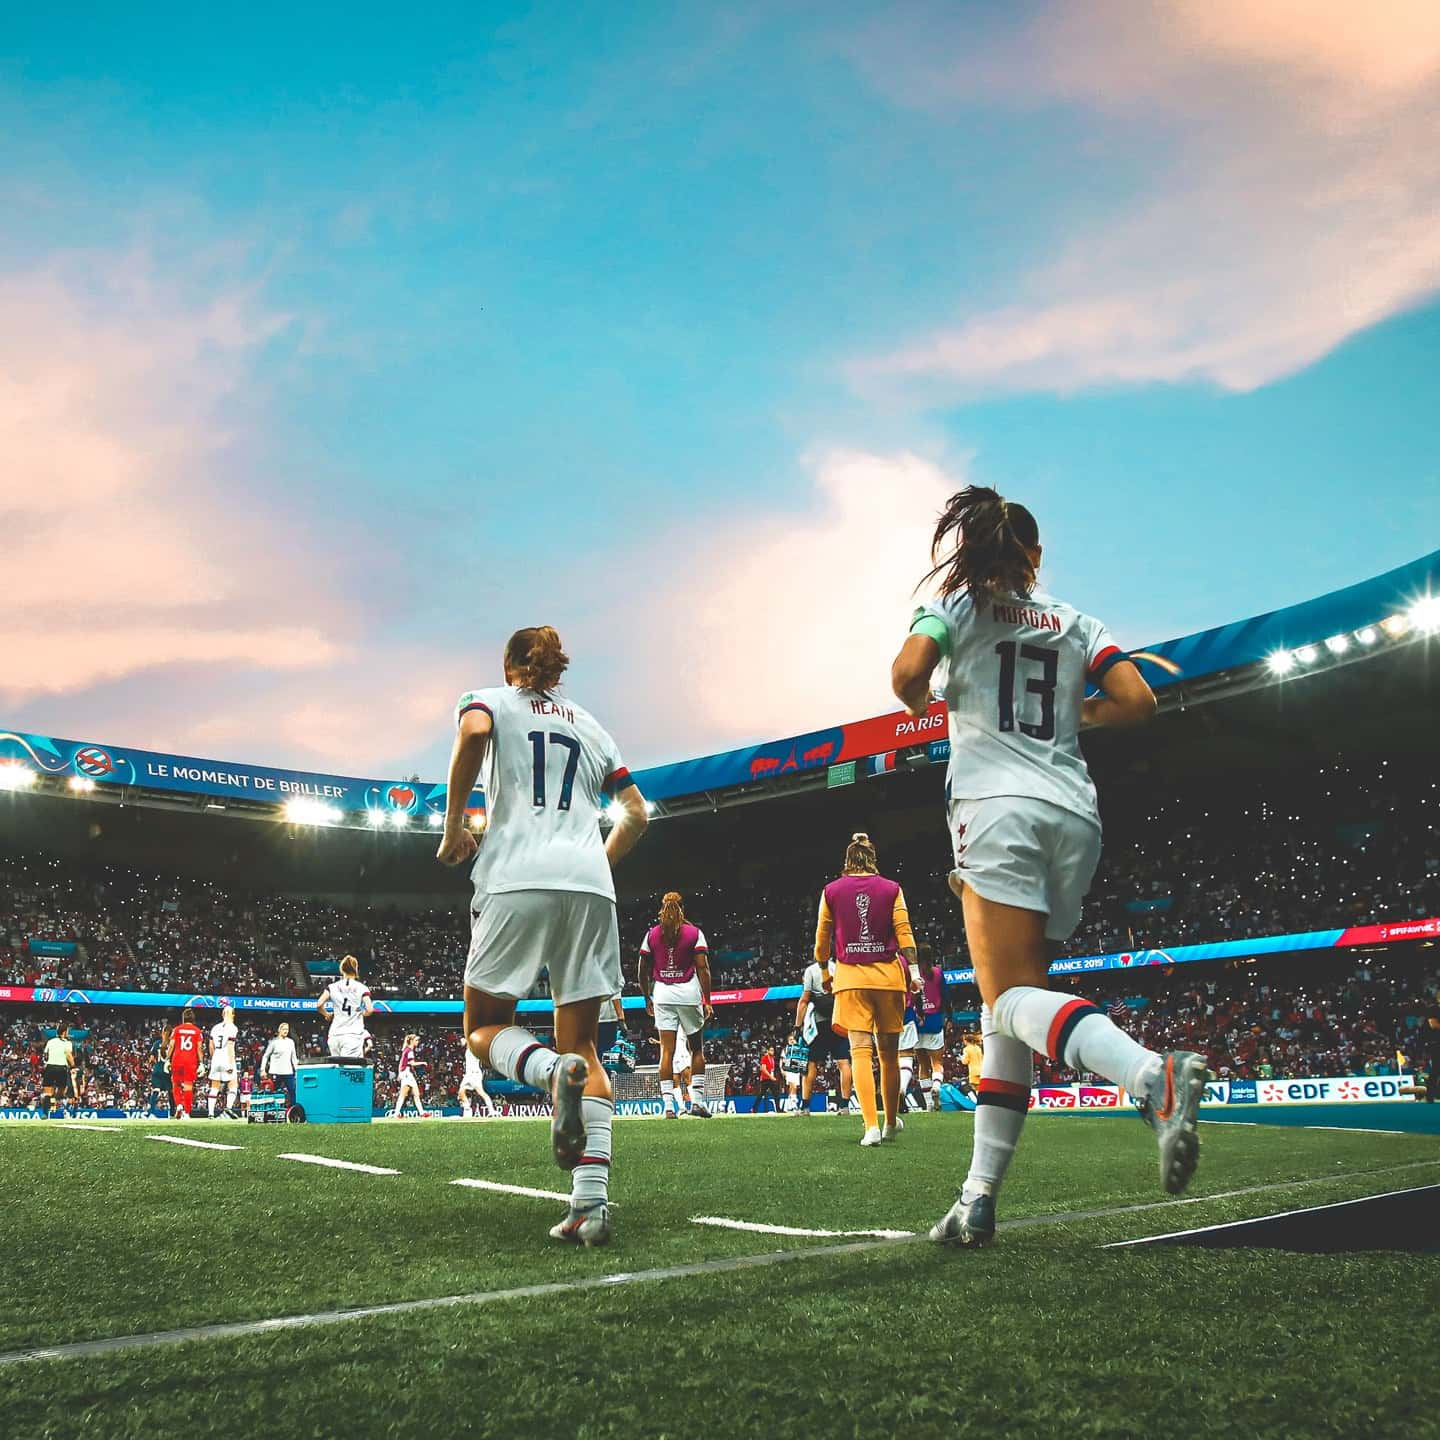 The U.S. Women's National Team will compete for the biggest prize in women's soccer when it takes on the Netherlands in the championship game of the 2019 FIFA Women's World Cup on Sunday, July 7 at Stade de Lyon in the French capital of women's soccer.